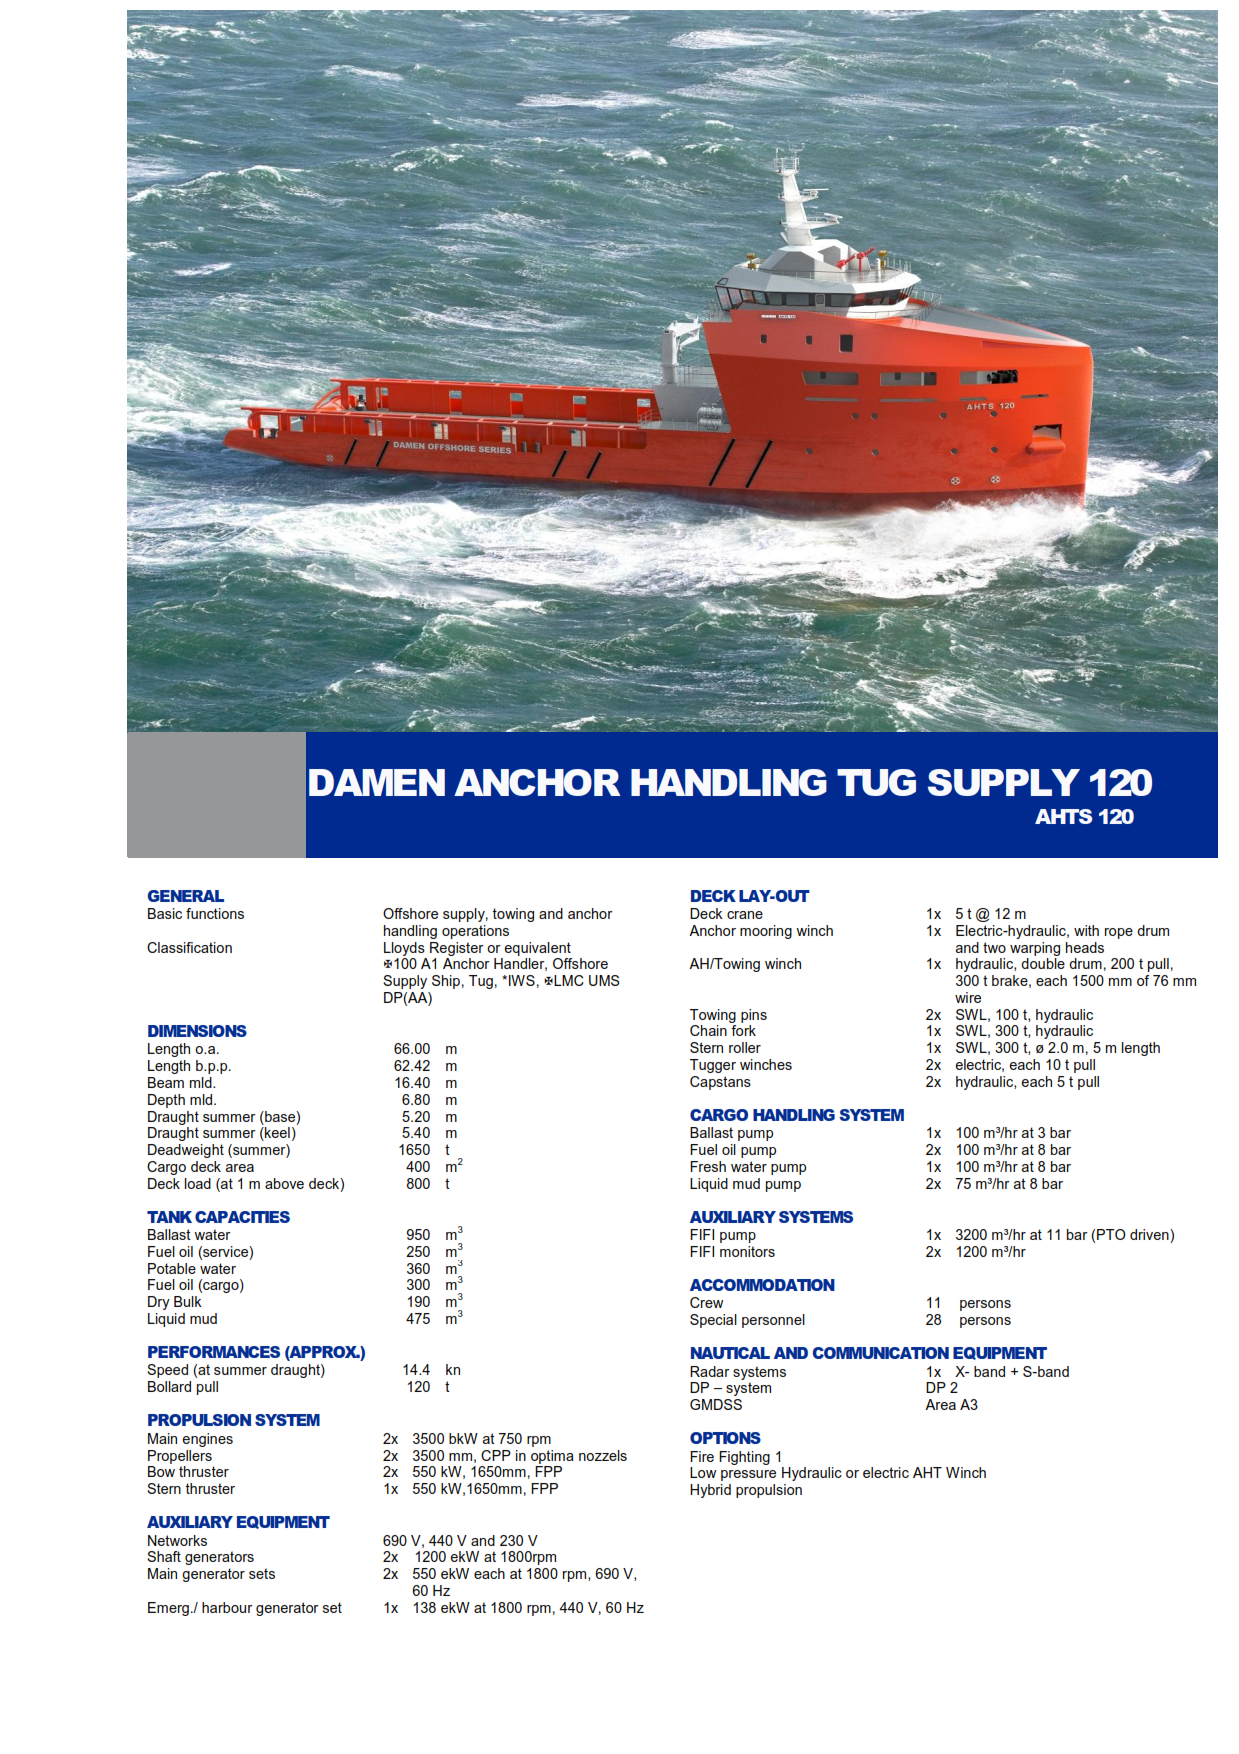 Leaflet_Anchor_Handling_Tug_Supplier_120_001.png